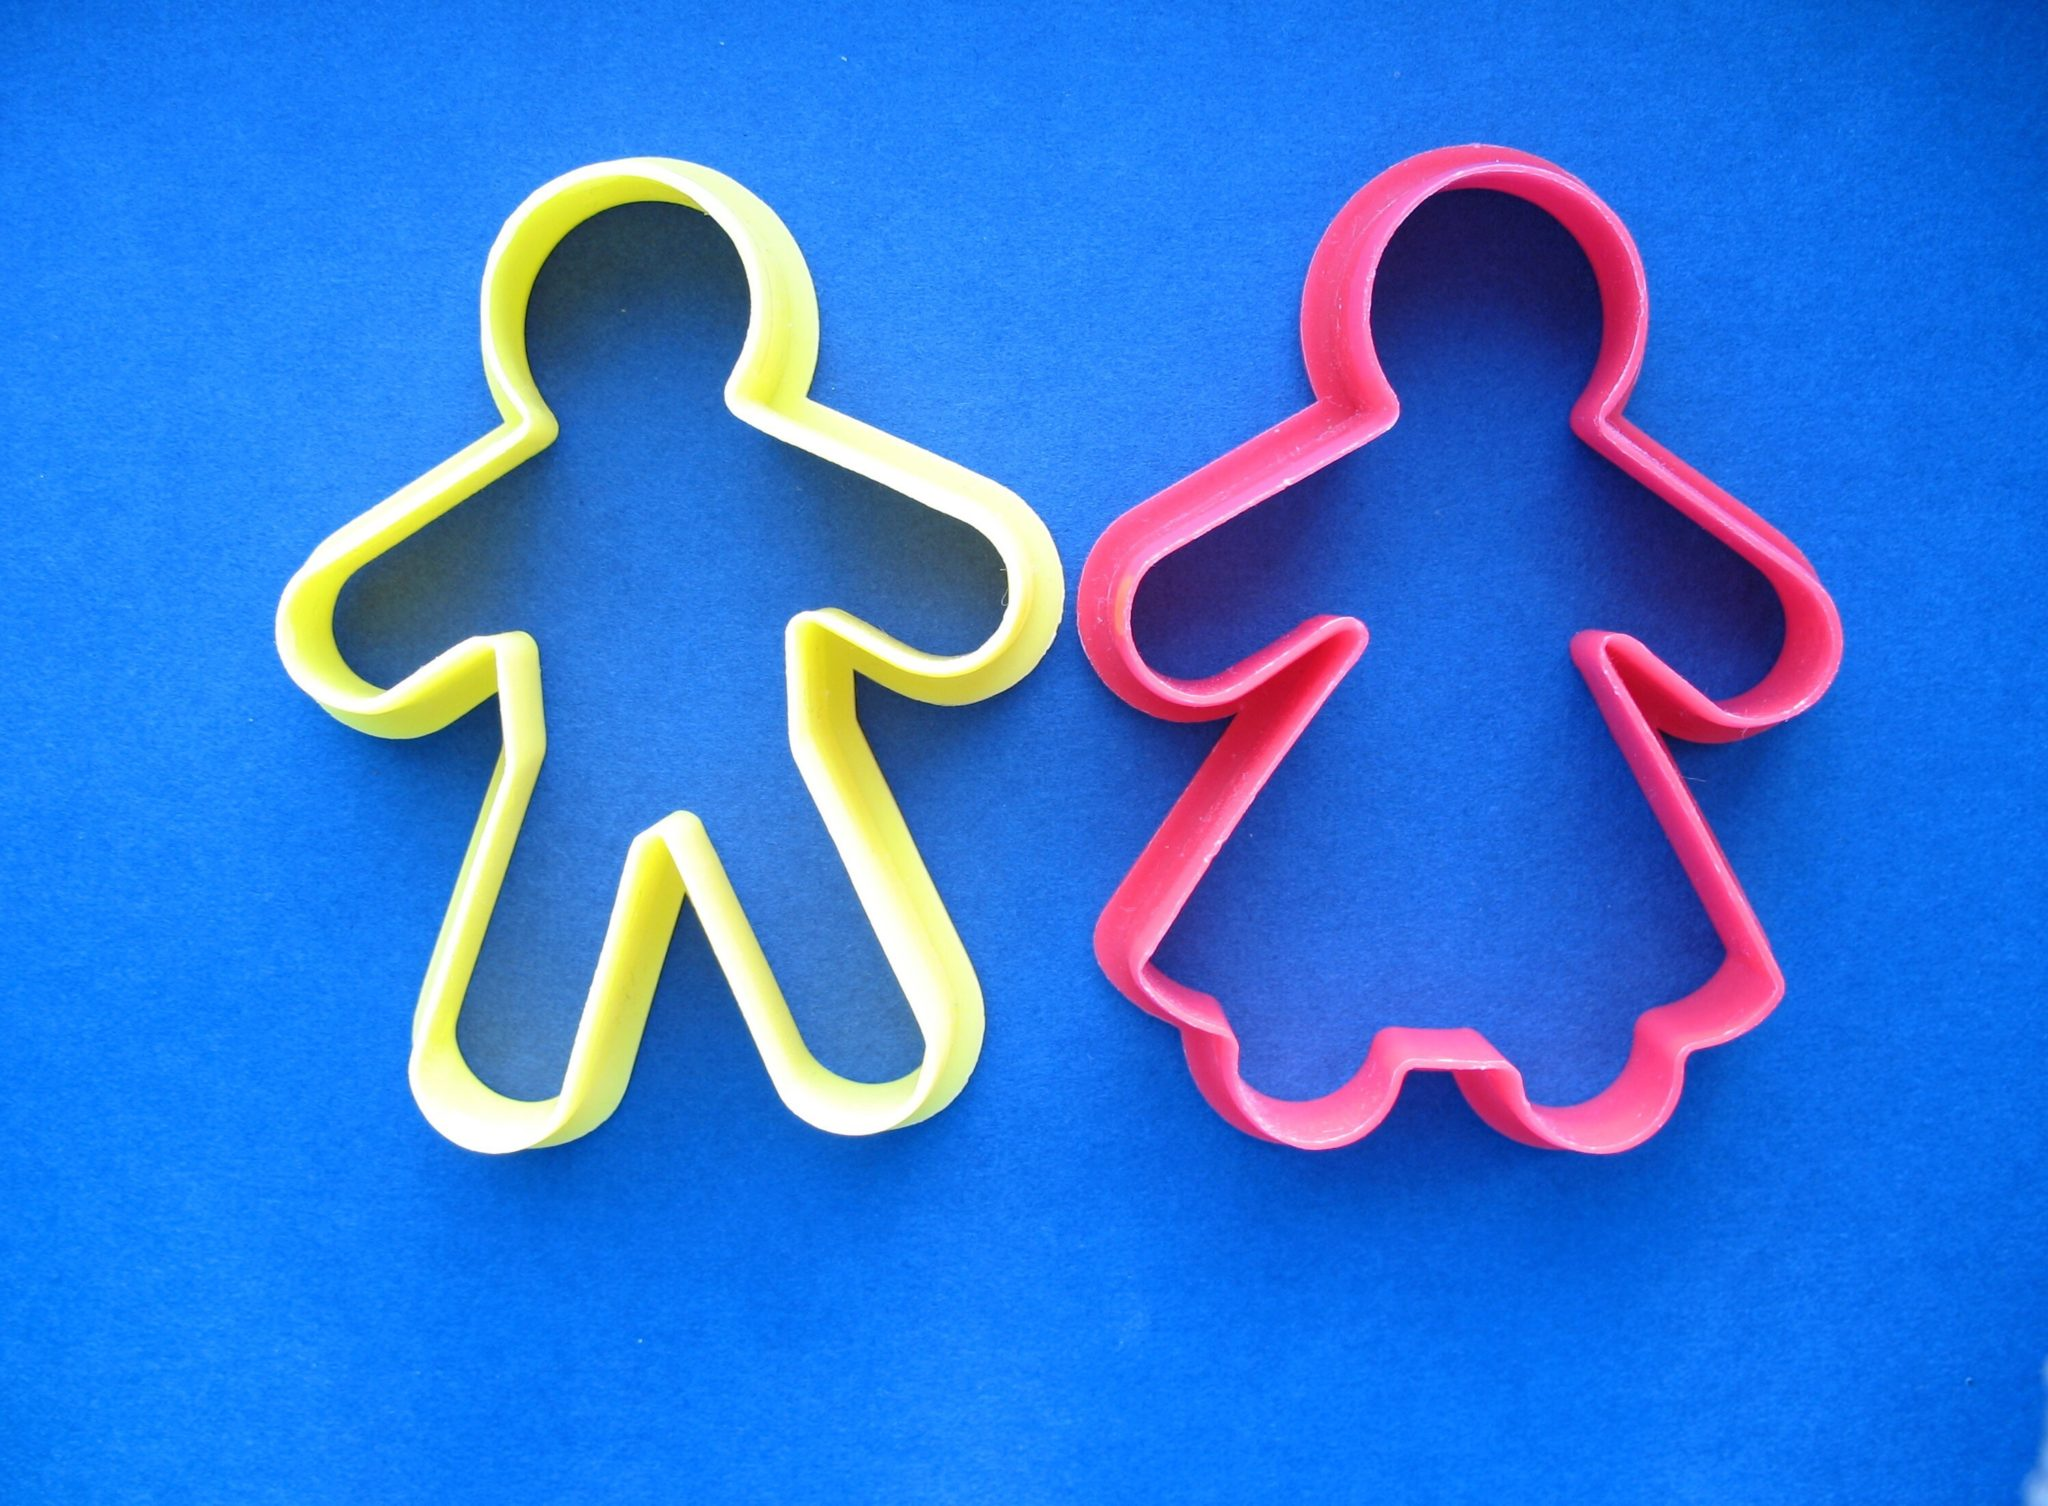 Cookie cutter people.